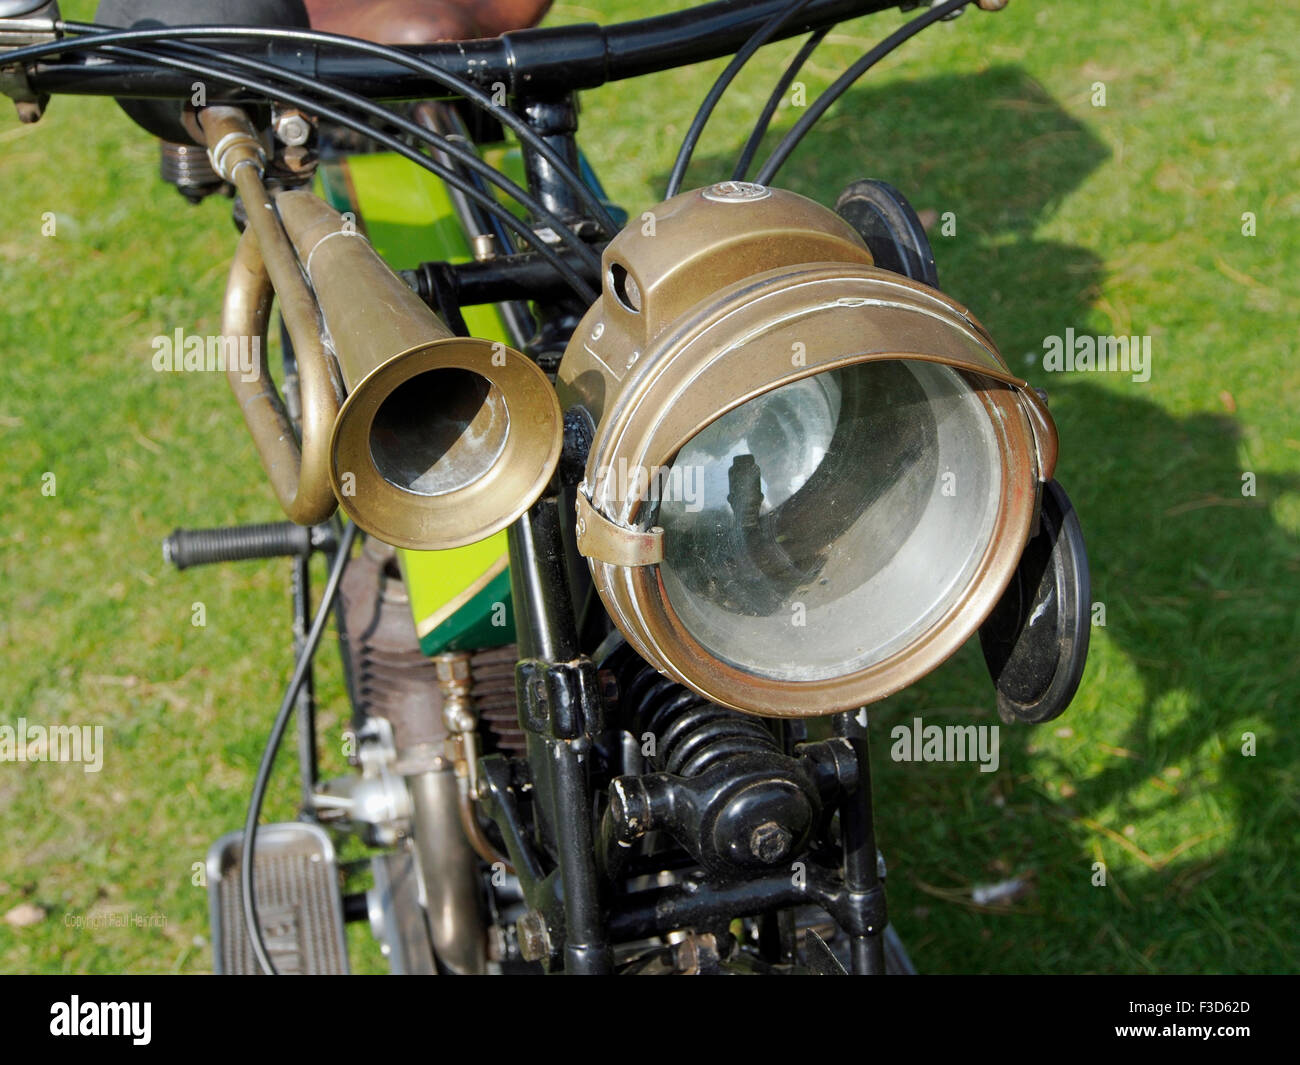 Brass Horn And Acetylene Headlamp (carbide Lamp) On A 1920 Motorcycle  Showing The Primitive